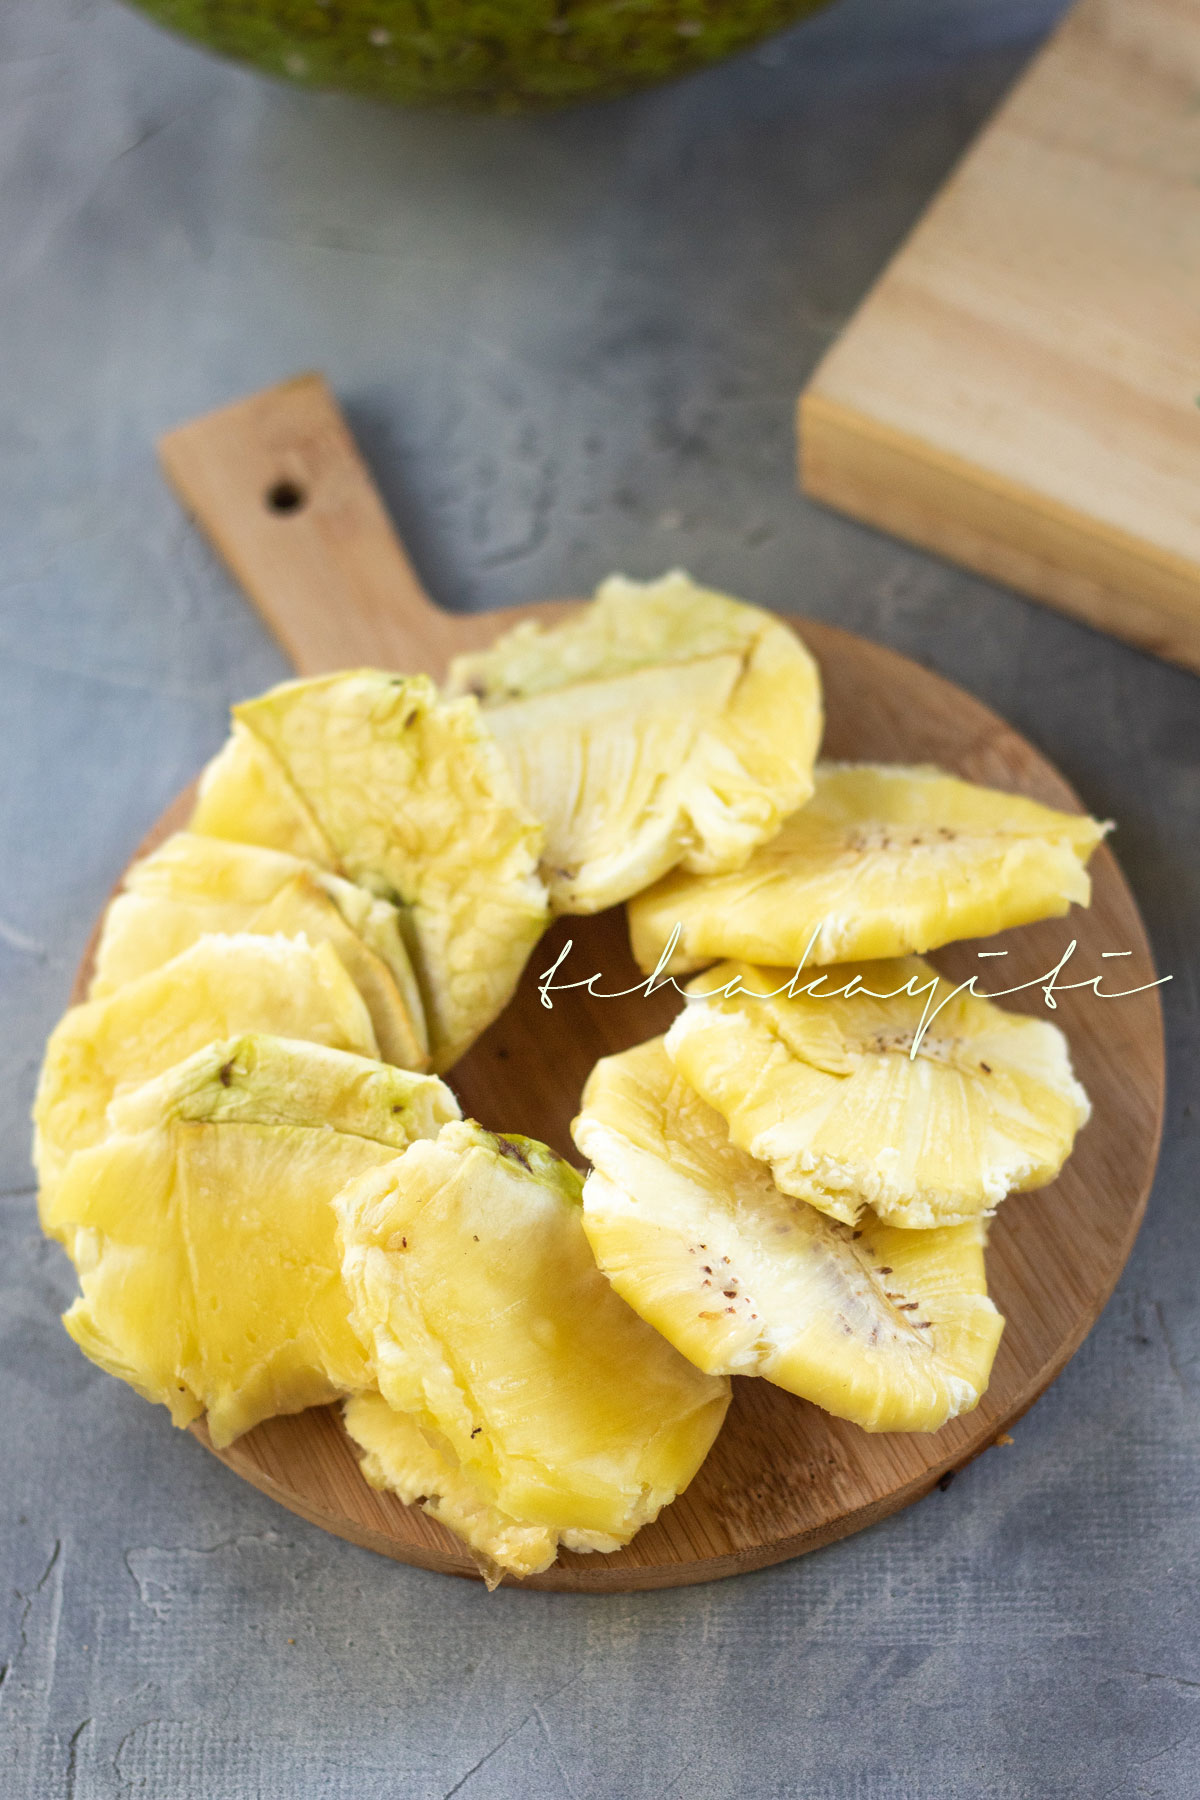 These pressed veritab aka breadfruit tostones make a great snack, appetizer or side dish. Eat them with a spicy slaw, or simply with salt sprinkled on top. | tchakayiti.com